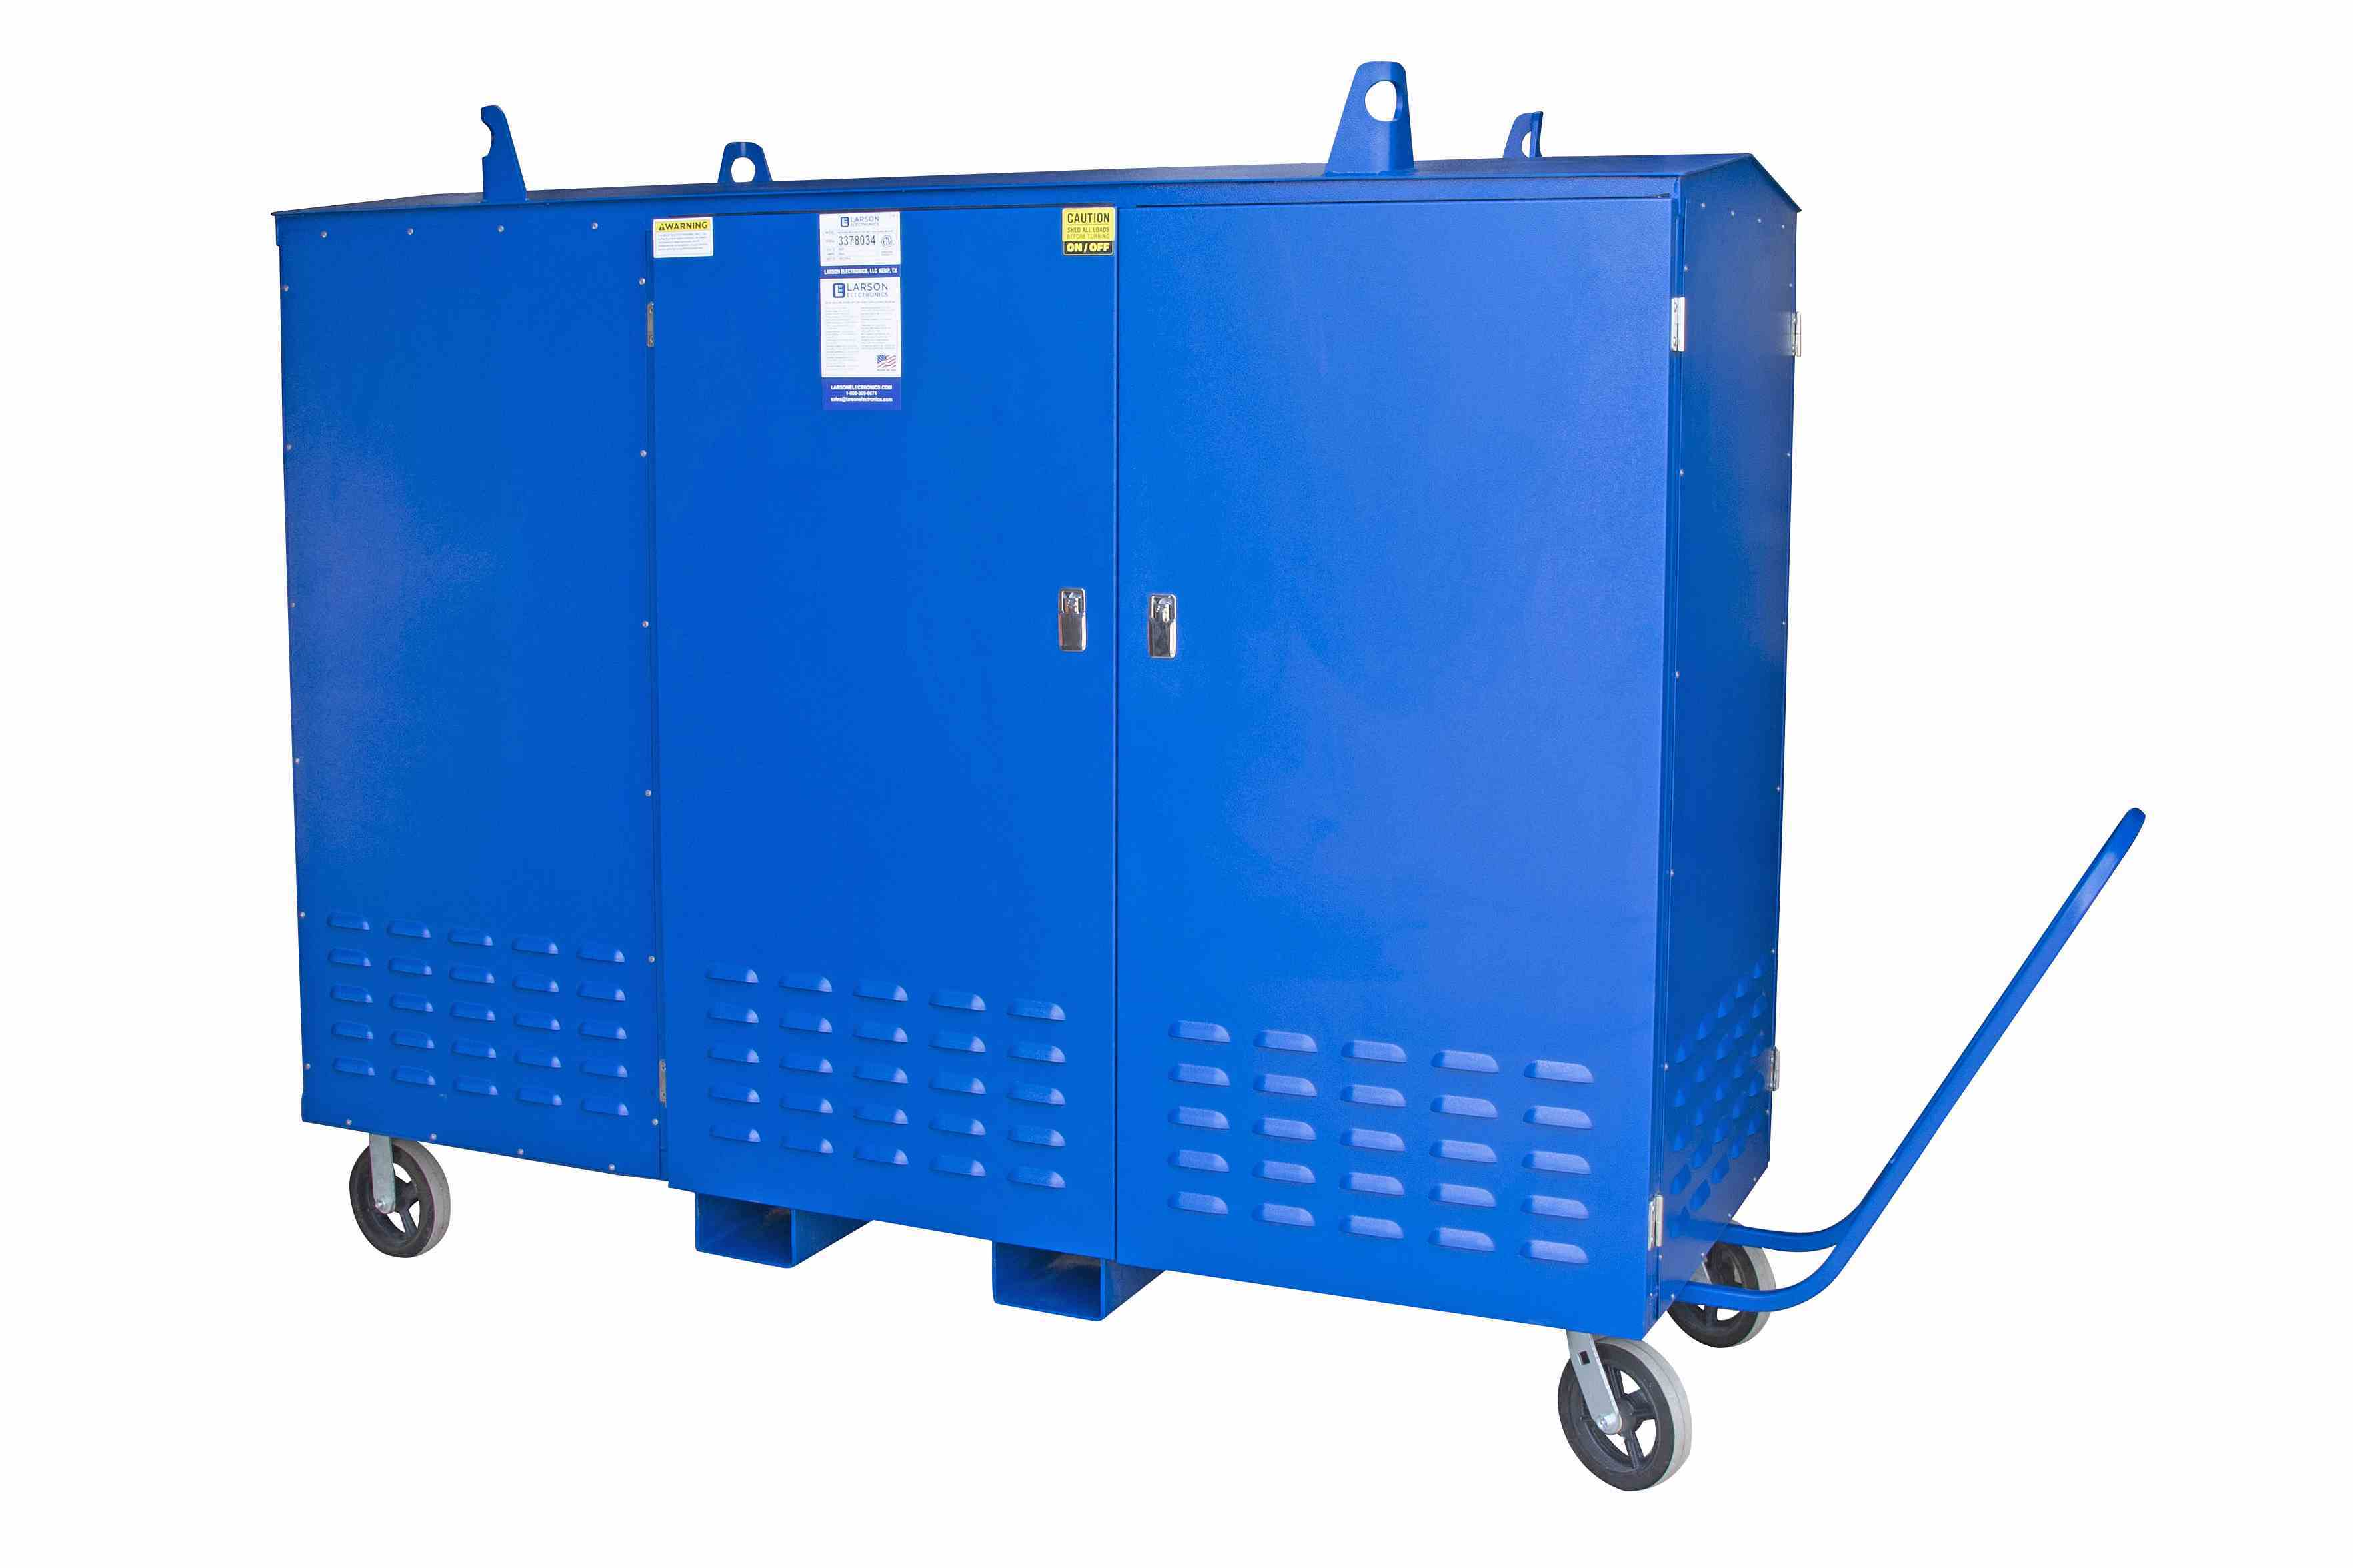 Replacement 10 KVA Transformer for MGS-DC-4X480.30A-10KVA-8X120.20A Power Distribution